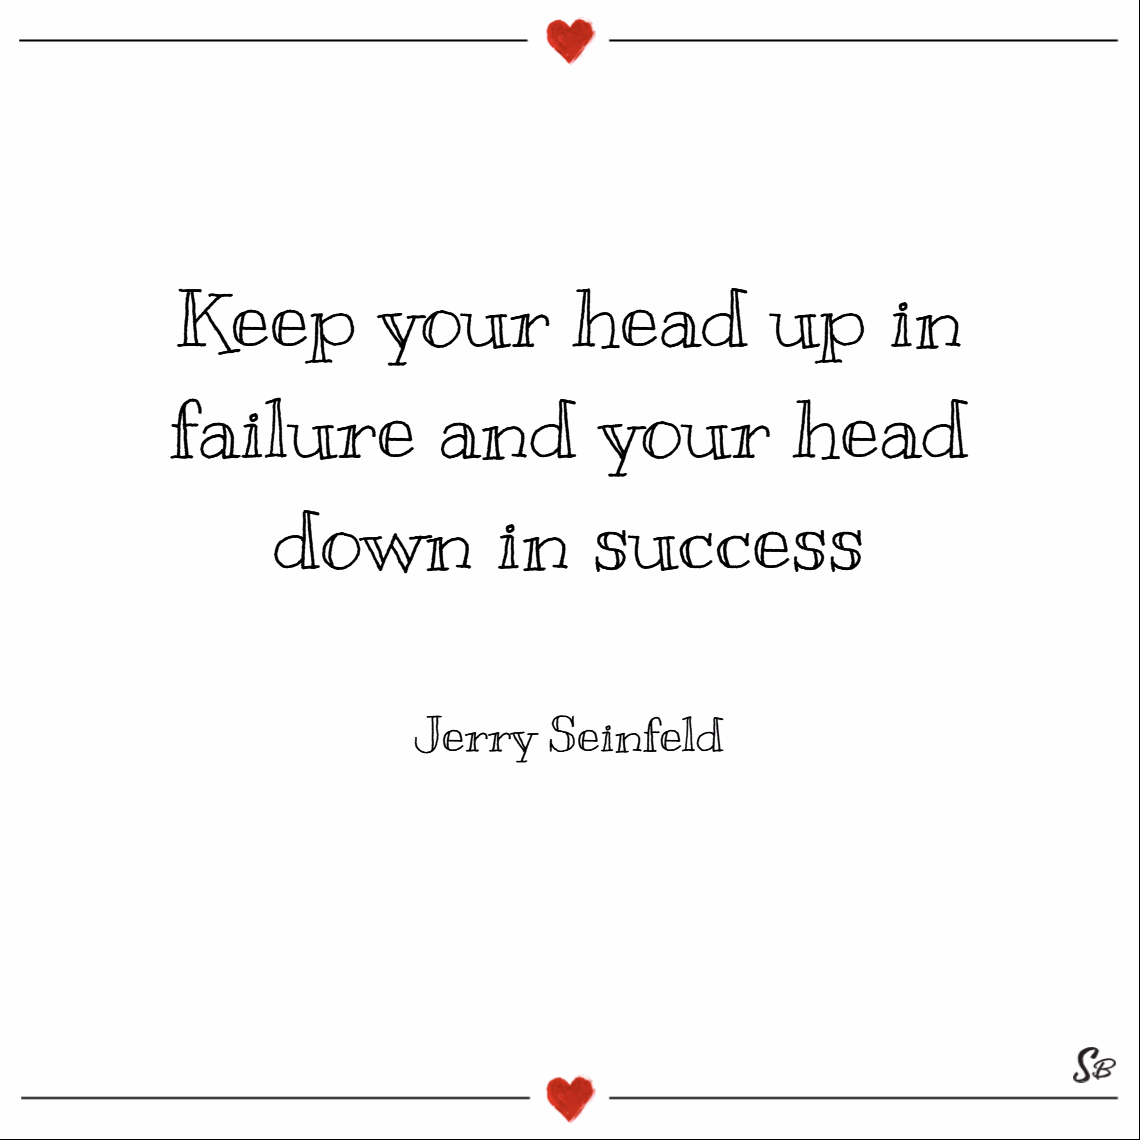 Keep your head up in failure and your head down in success. – jerry seinfeld